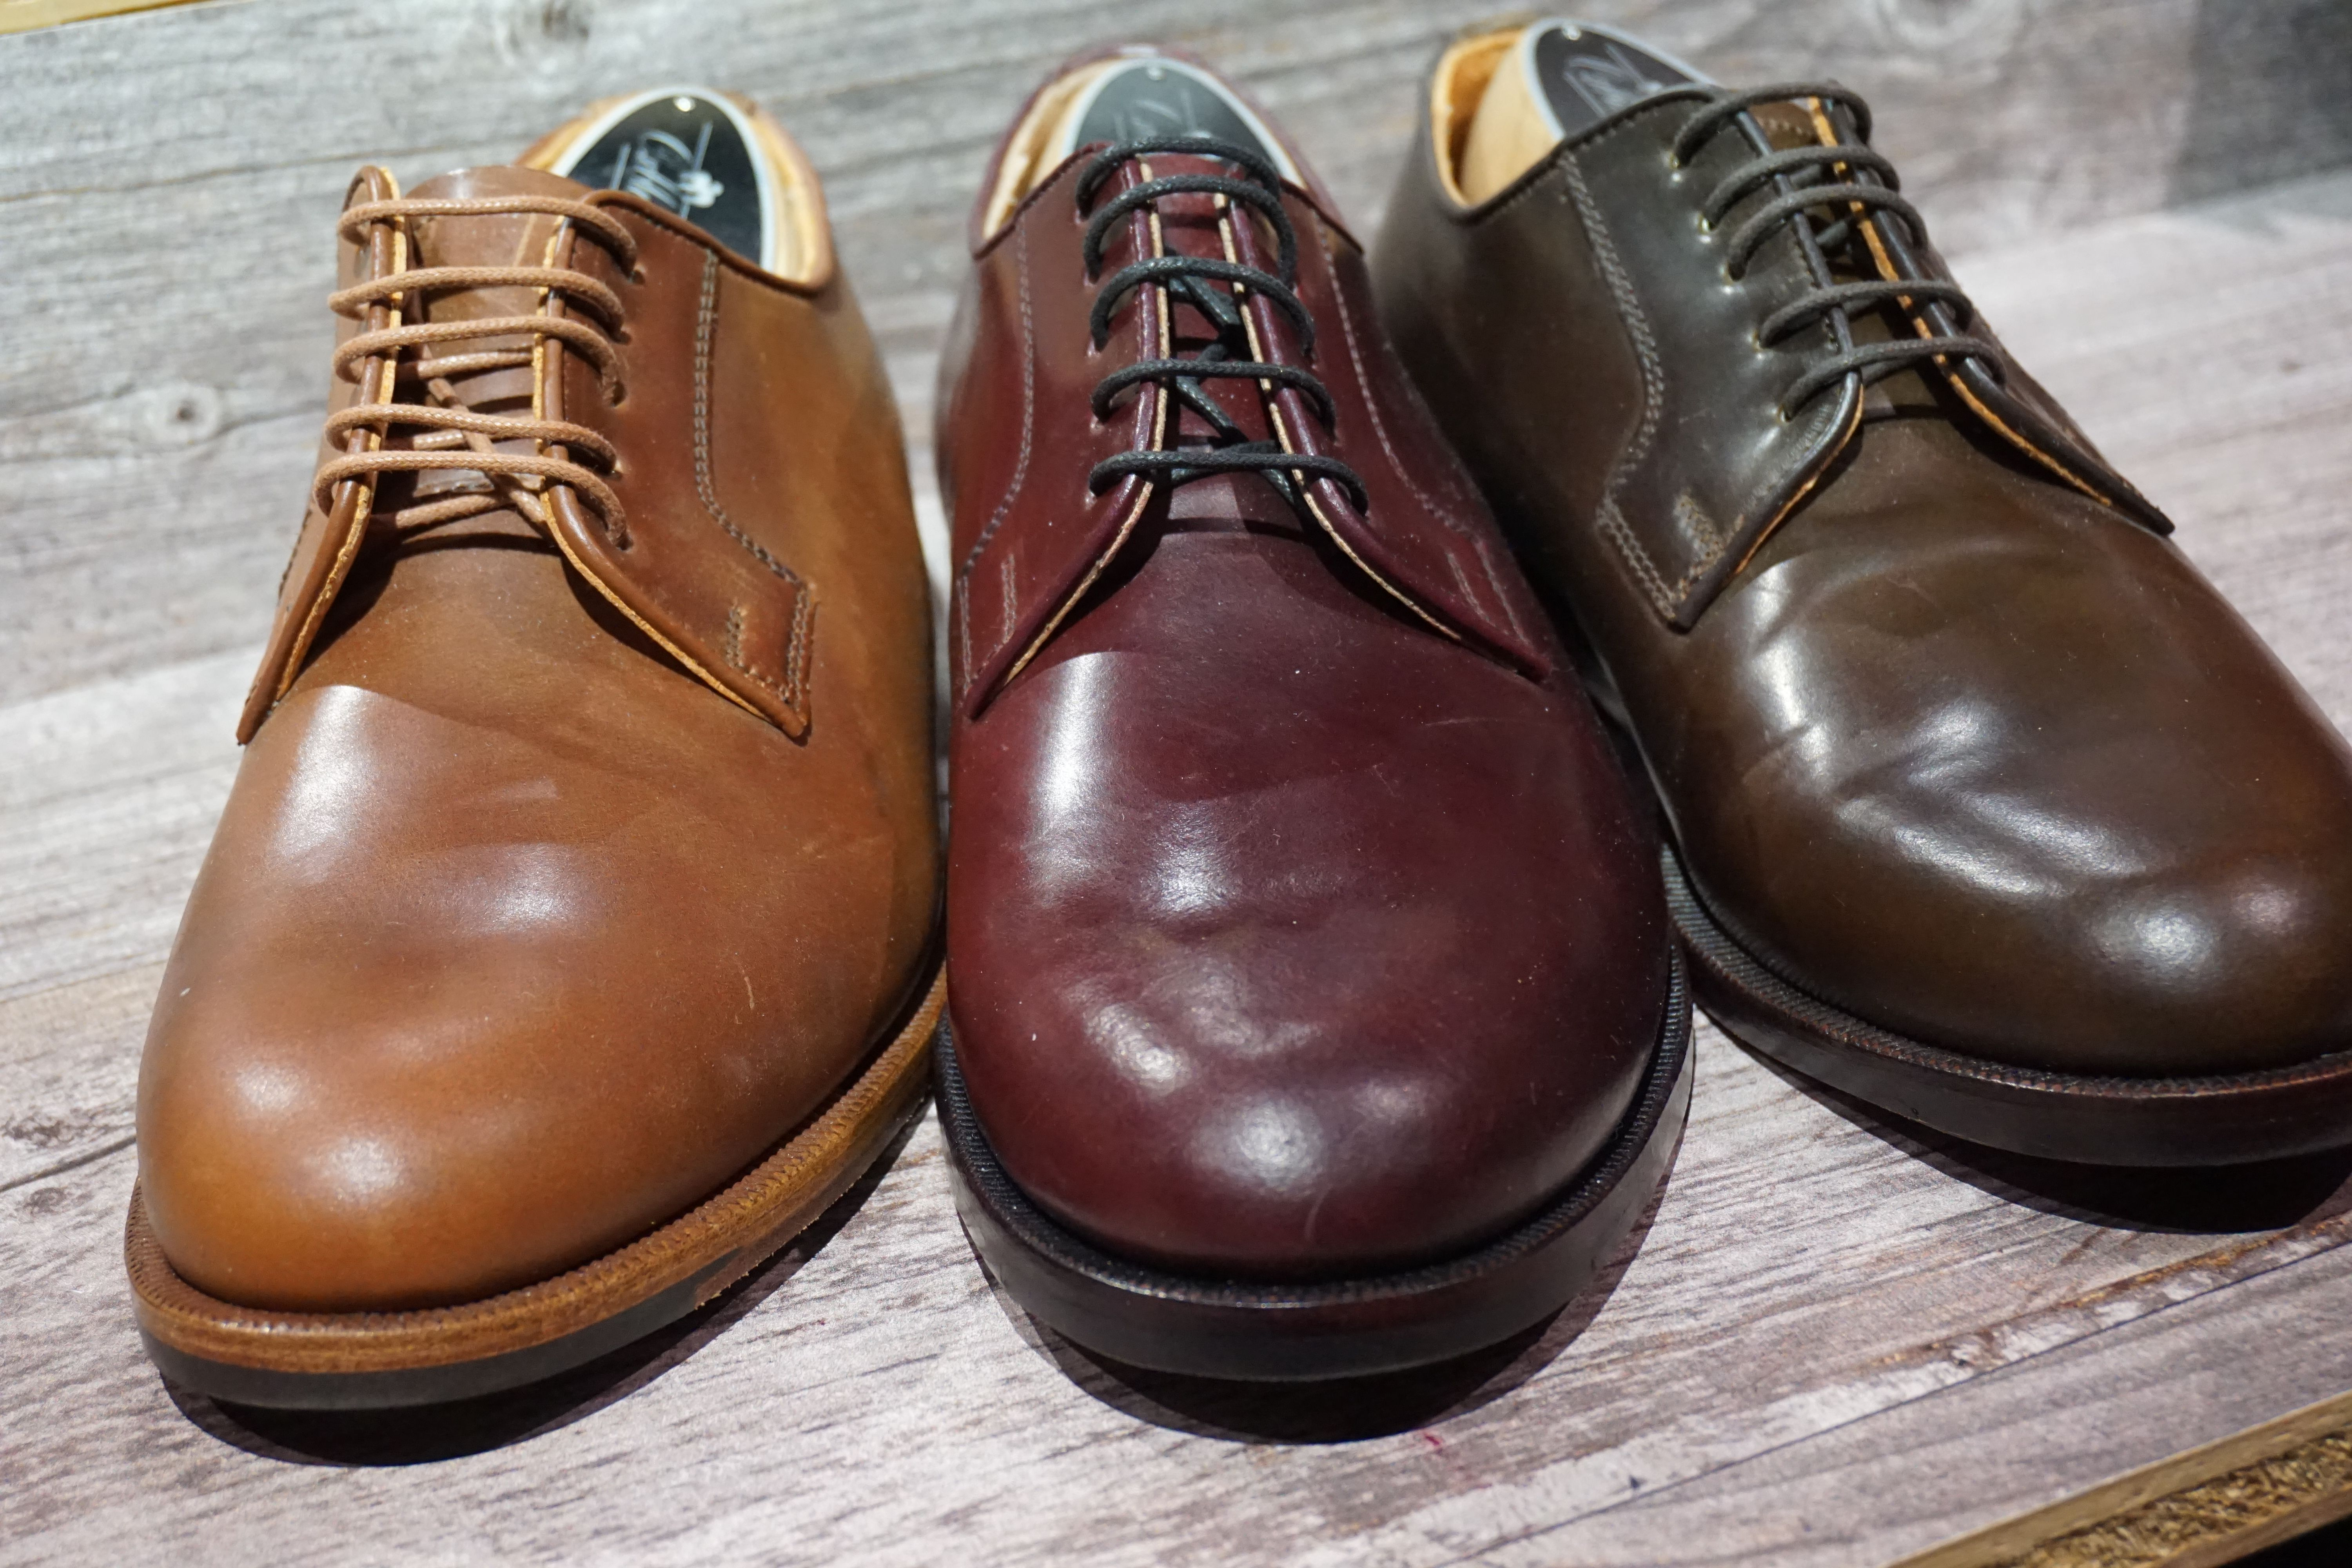 Finest Cordovan Shoes available at Oxblood Zürich Europaallee19 8004 Zürich www.oxblood.ch